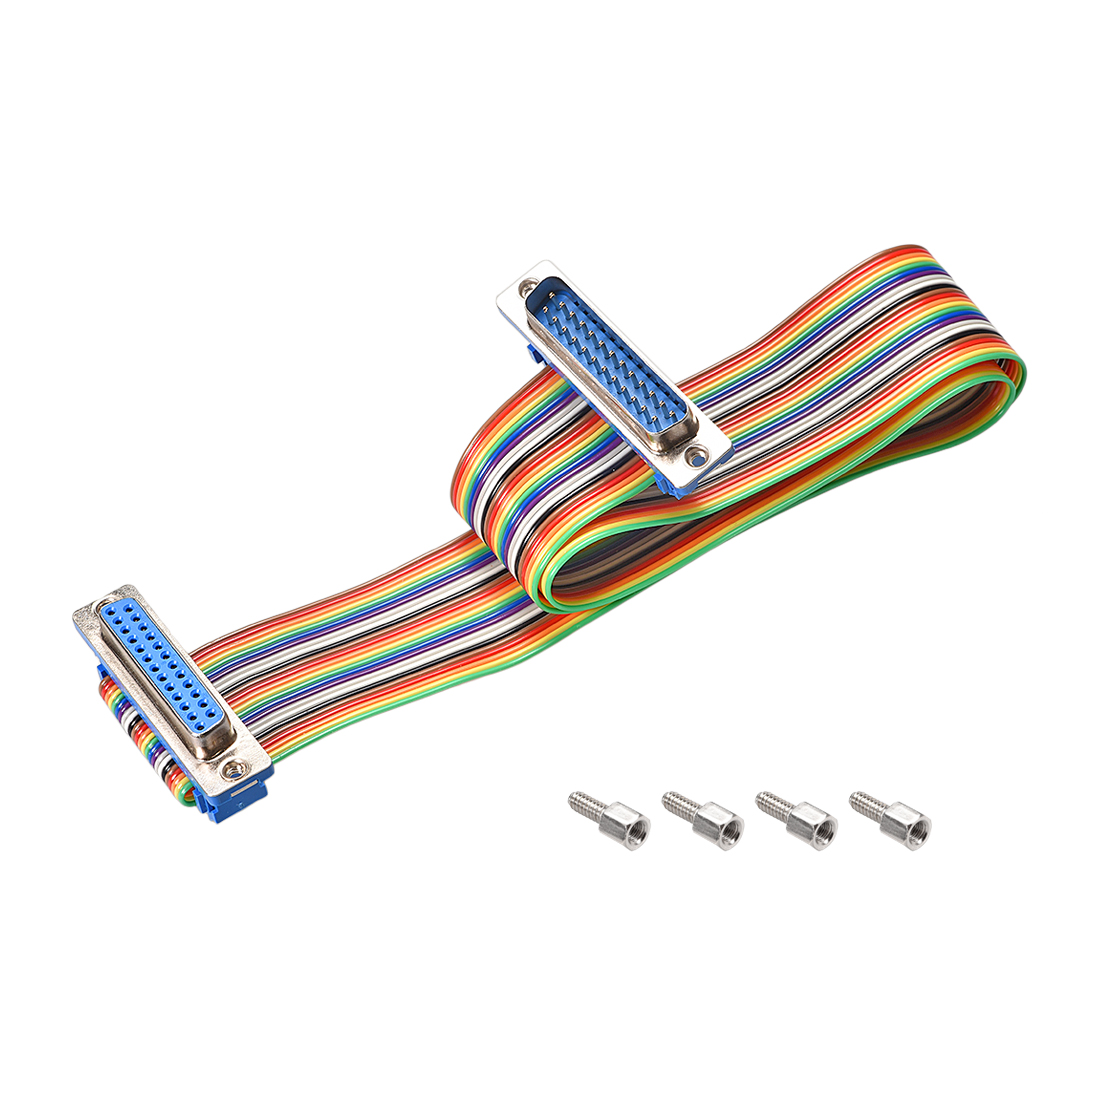 IDC Rainbow Wire Flat Ribbon Cable DB25 M/F Connector 2.54mm Pitch 19.7inch Long